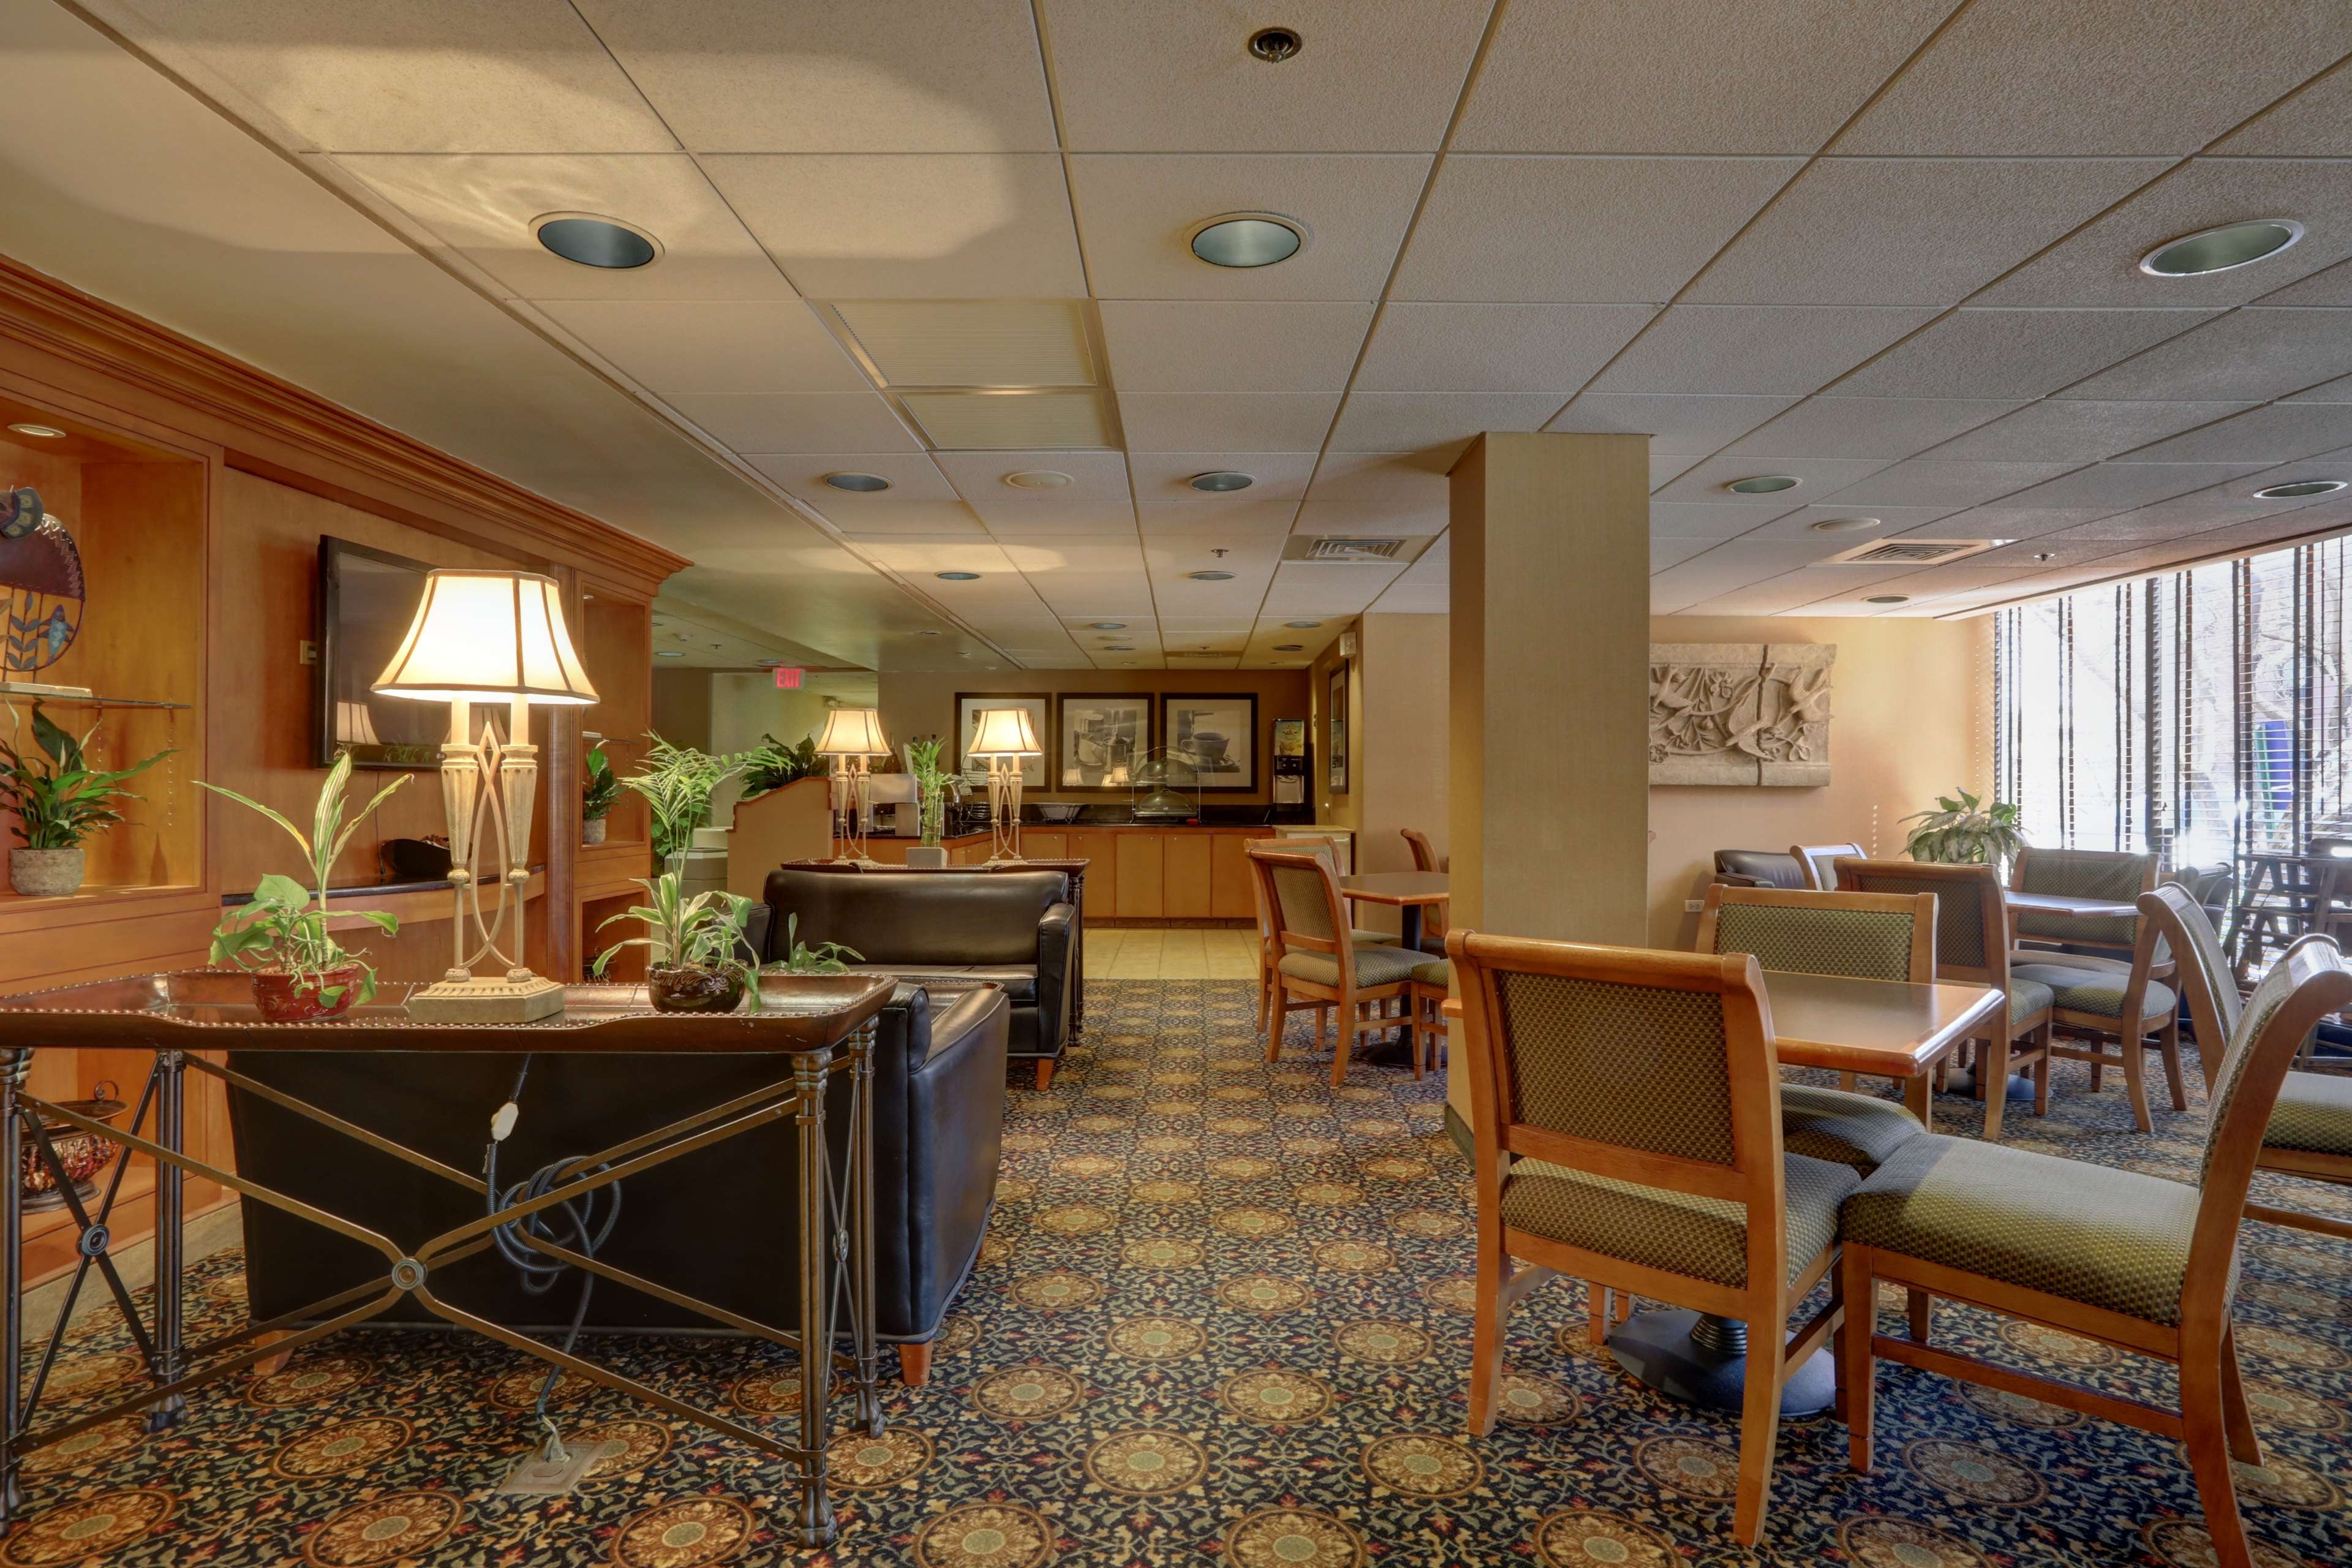 Surestay Plus Hotel By Best Western Chicago Lombard  Lombard Illinois  Il